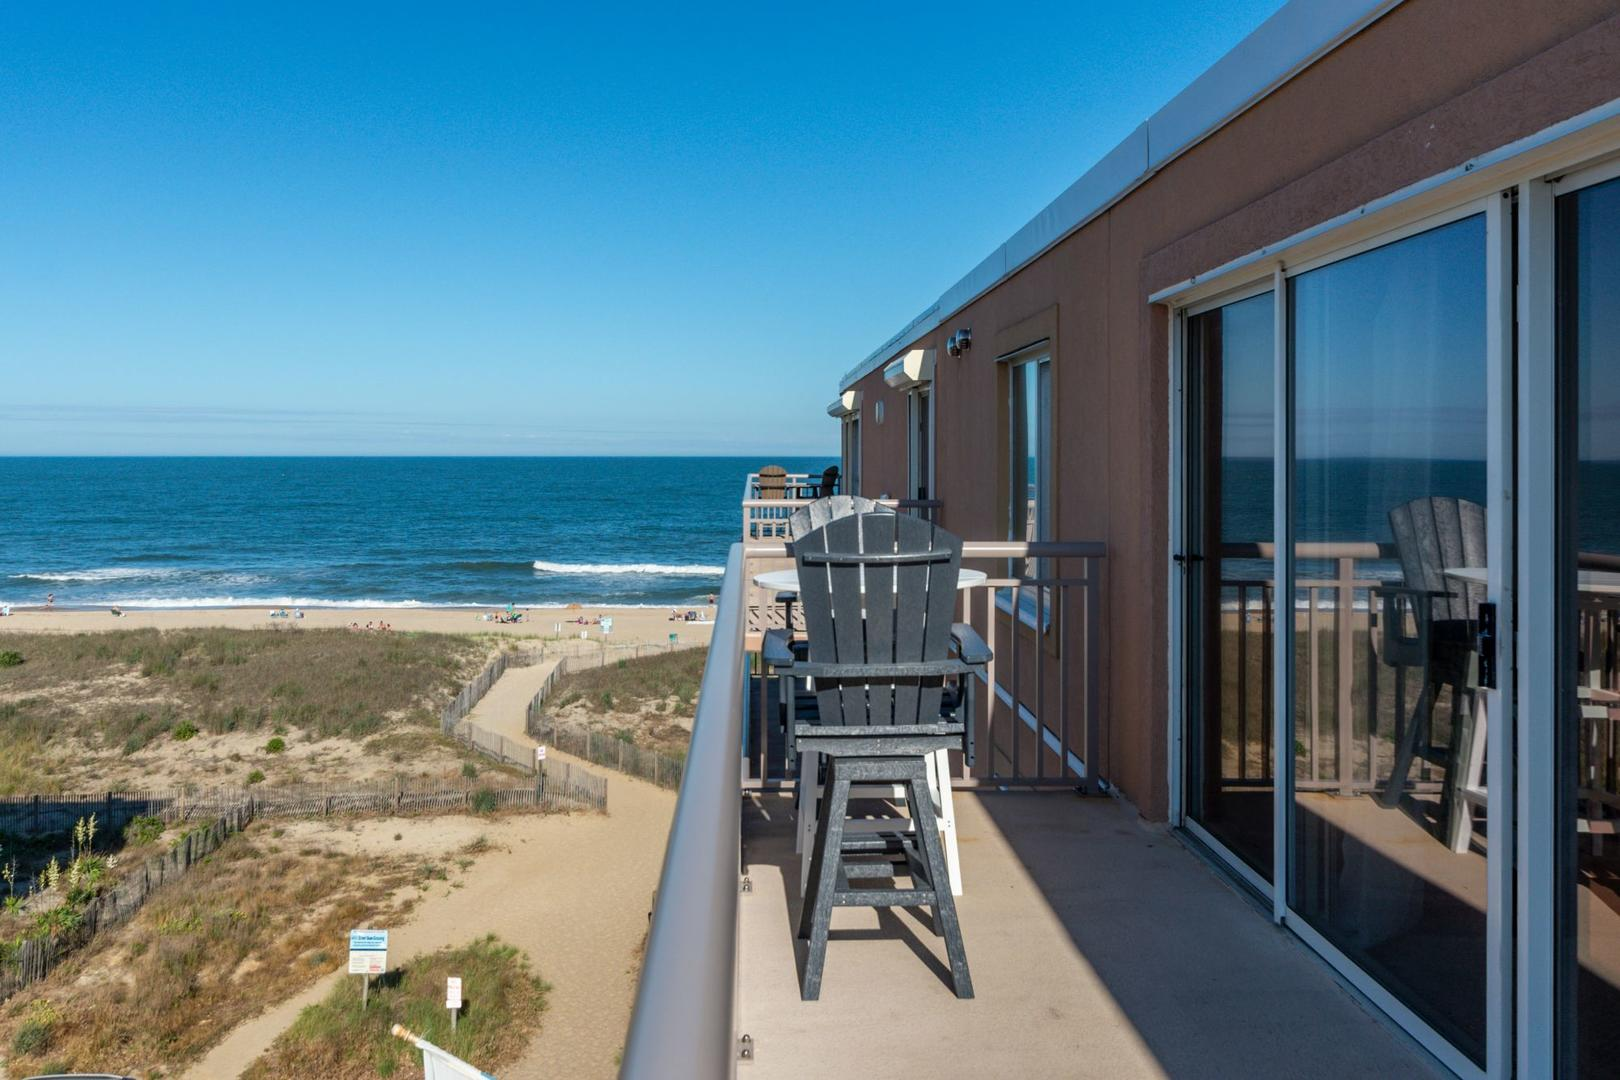 Surfcaster 401 - Balcony with Ocean View